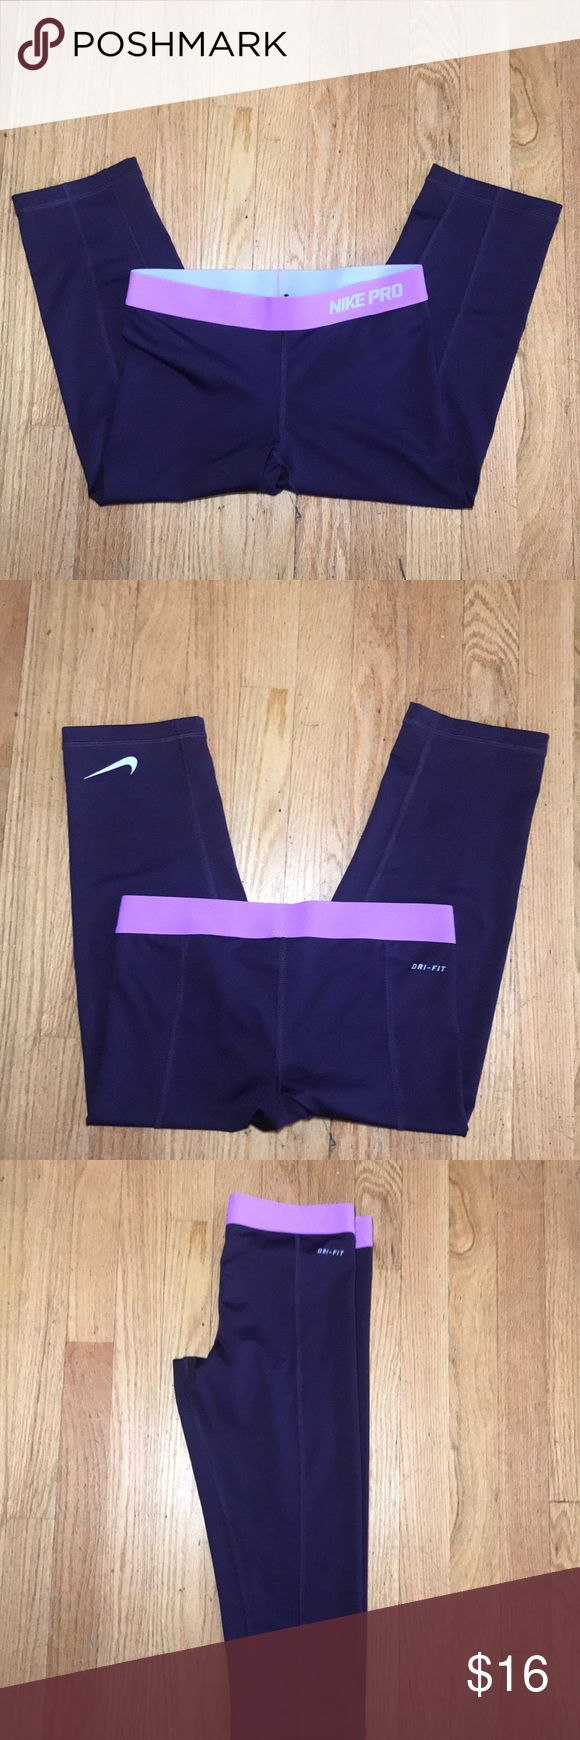 Nike Dri-Fit workout pants! Size S! Purple Dri-Fit Workout Leggings! 3/4 length. Size small. Lightly worn. Great addition to a spring/summer wardrobe! Nike Pants Leggings